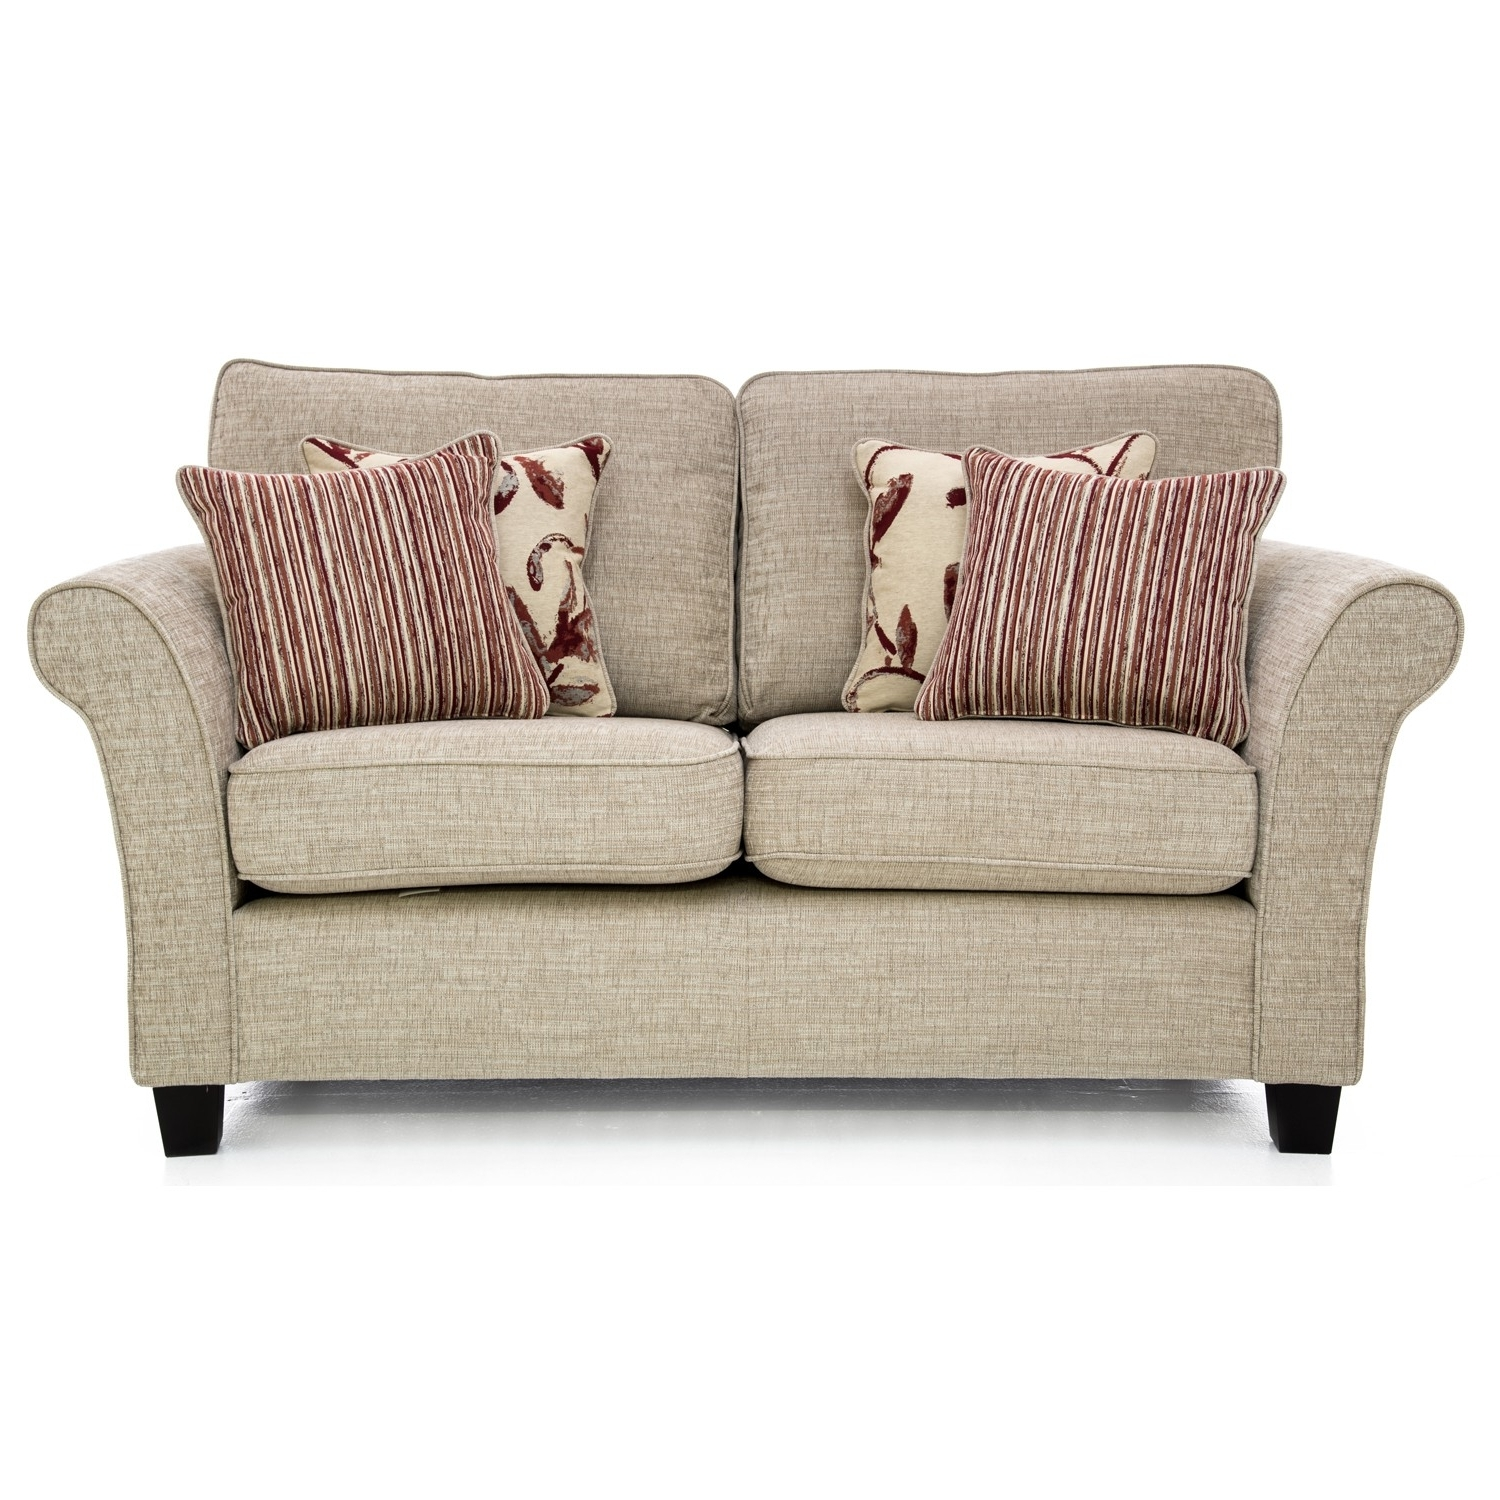 Fancy Small 2 Seater Sofa 50 Modern Sofa Inspiration With Small 2 Throughout Widely Used Small 2 Seater Sofas (View 2 of 20)